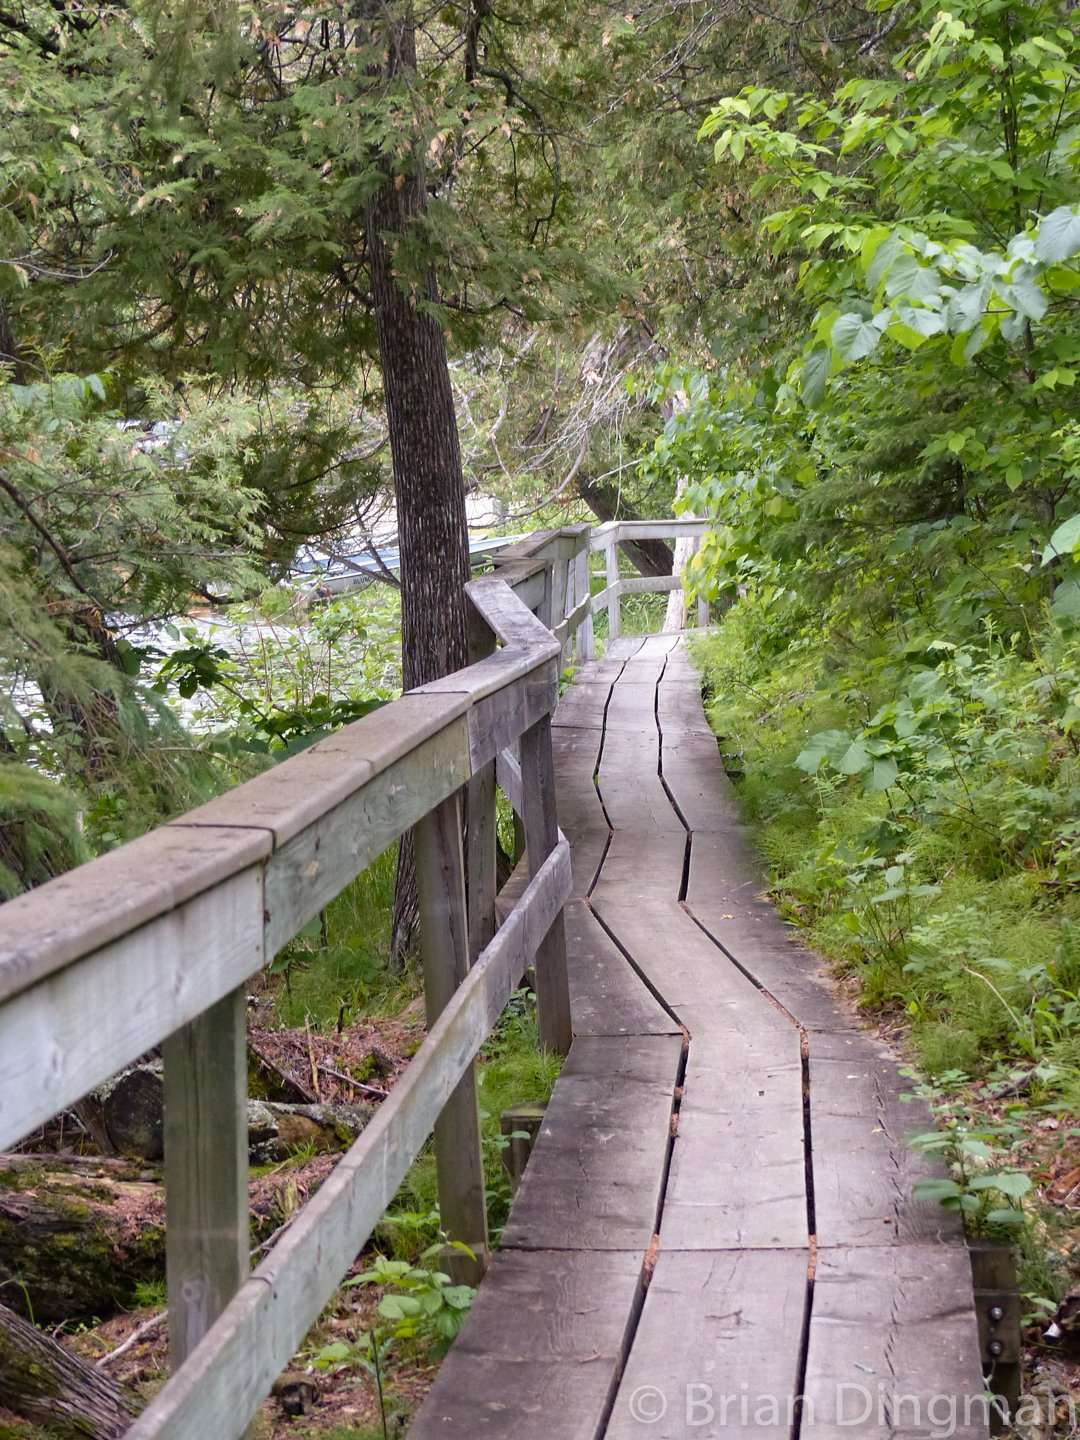 The boardwalk below Chase Point Campground follows the edge of Coon Lake at Scenic State Park